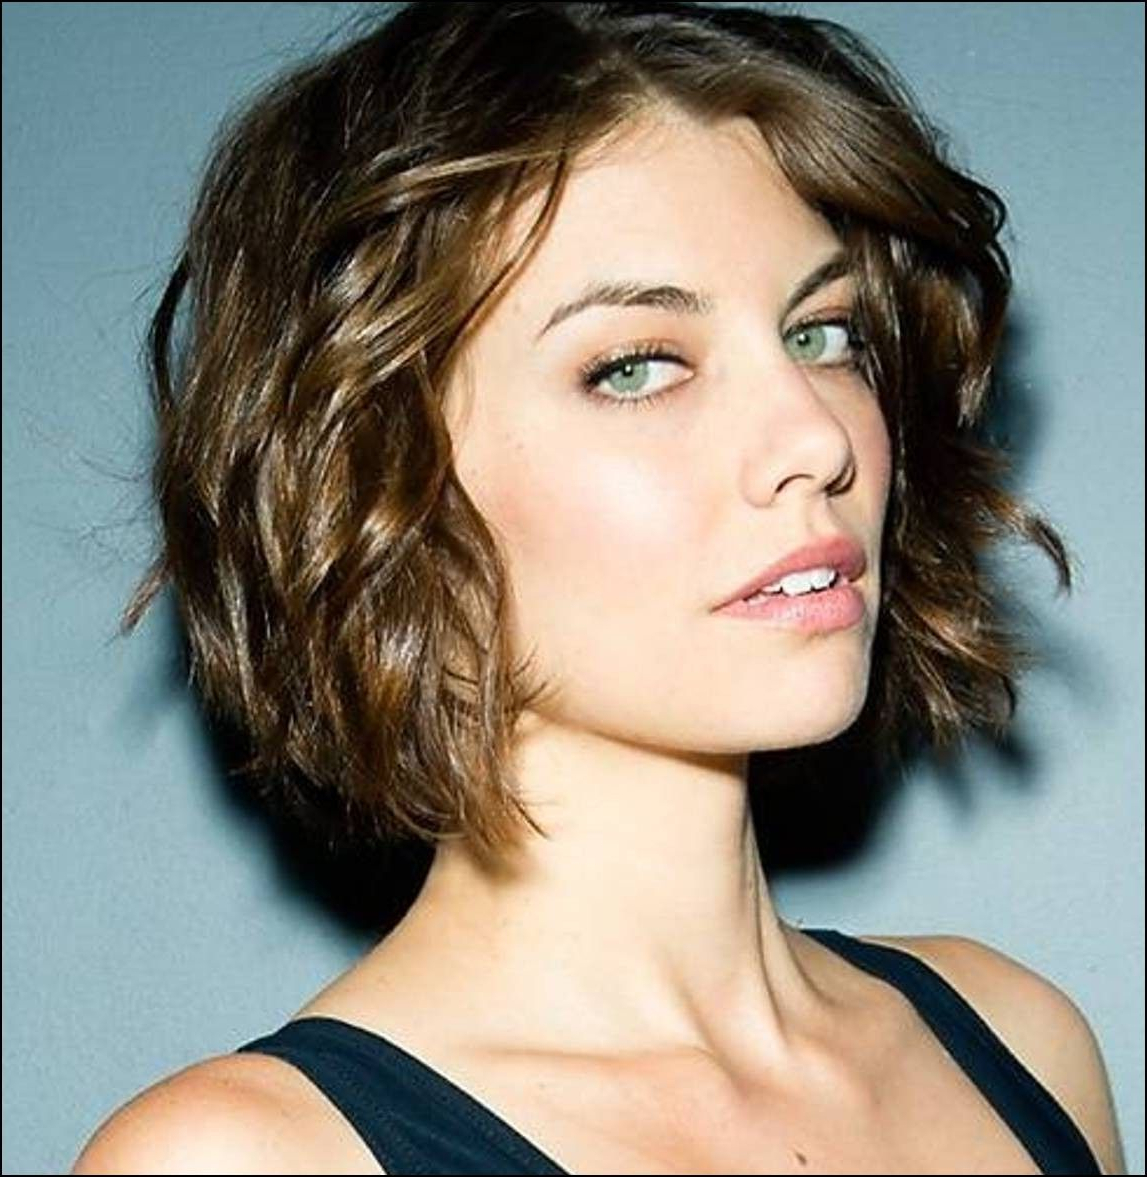 Short Hairstyle : Winning Short Natural Curly Hairstyles Oval Faces For Curly Short Hairstyles For Oval Faces (View 3 of 25)